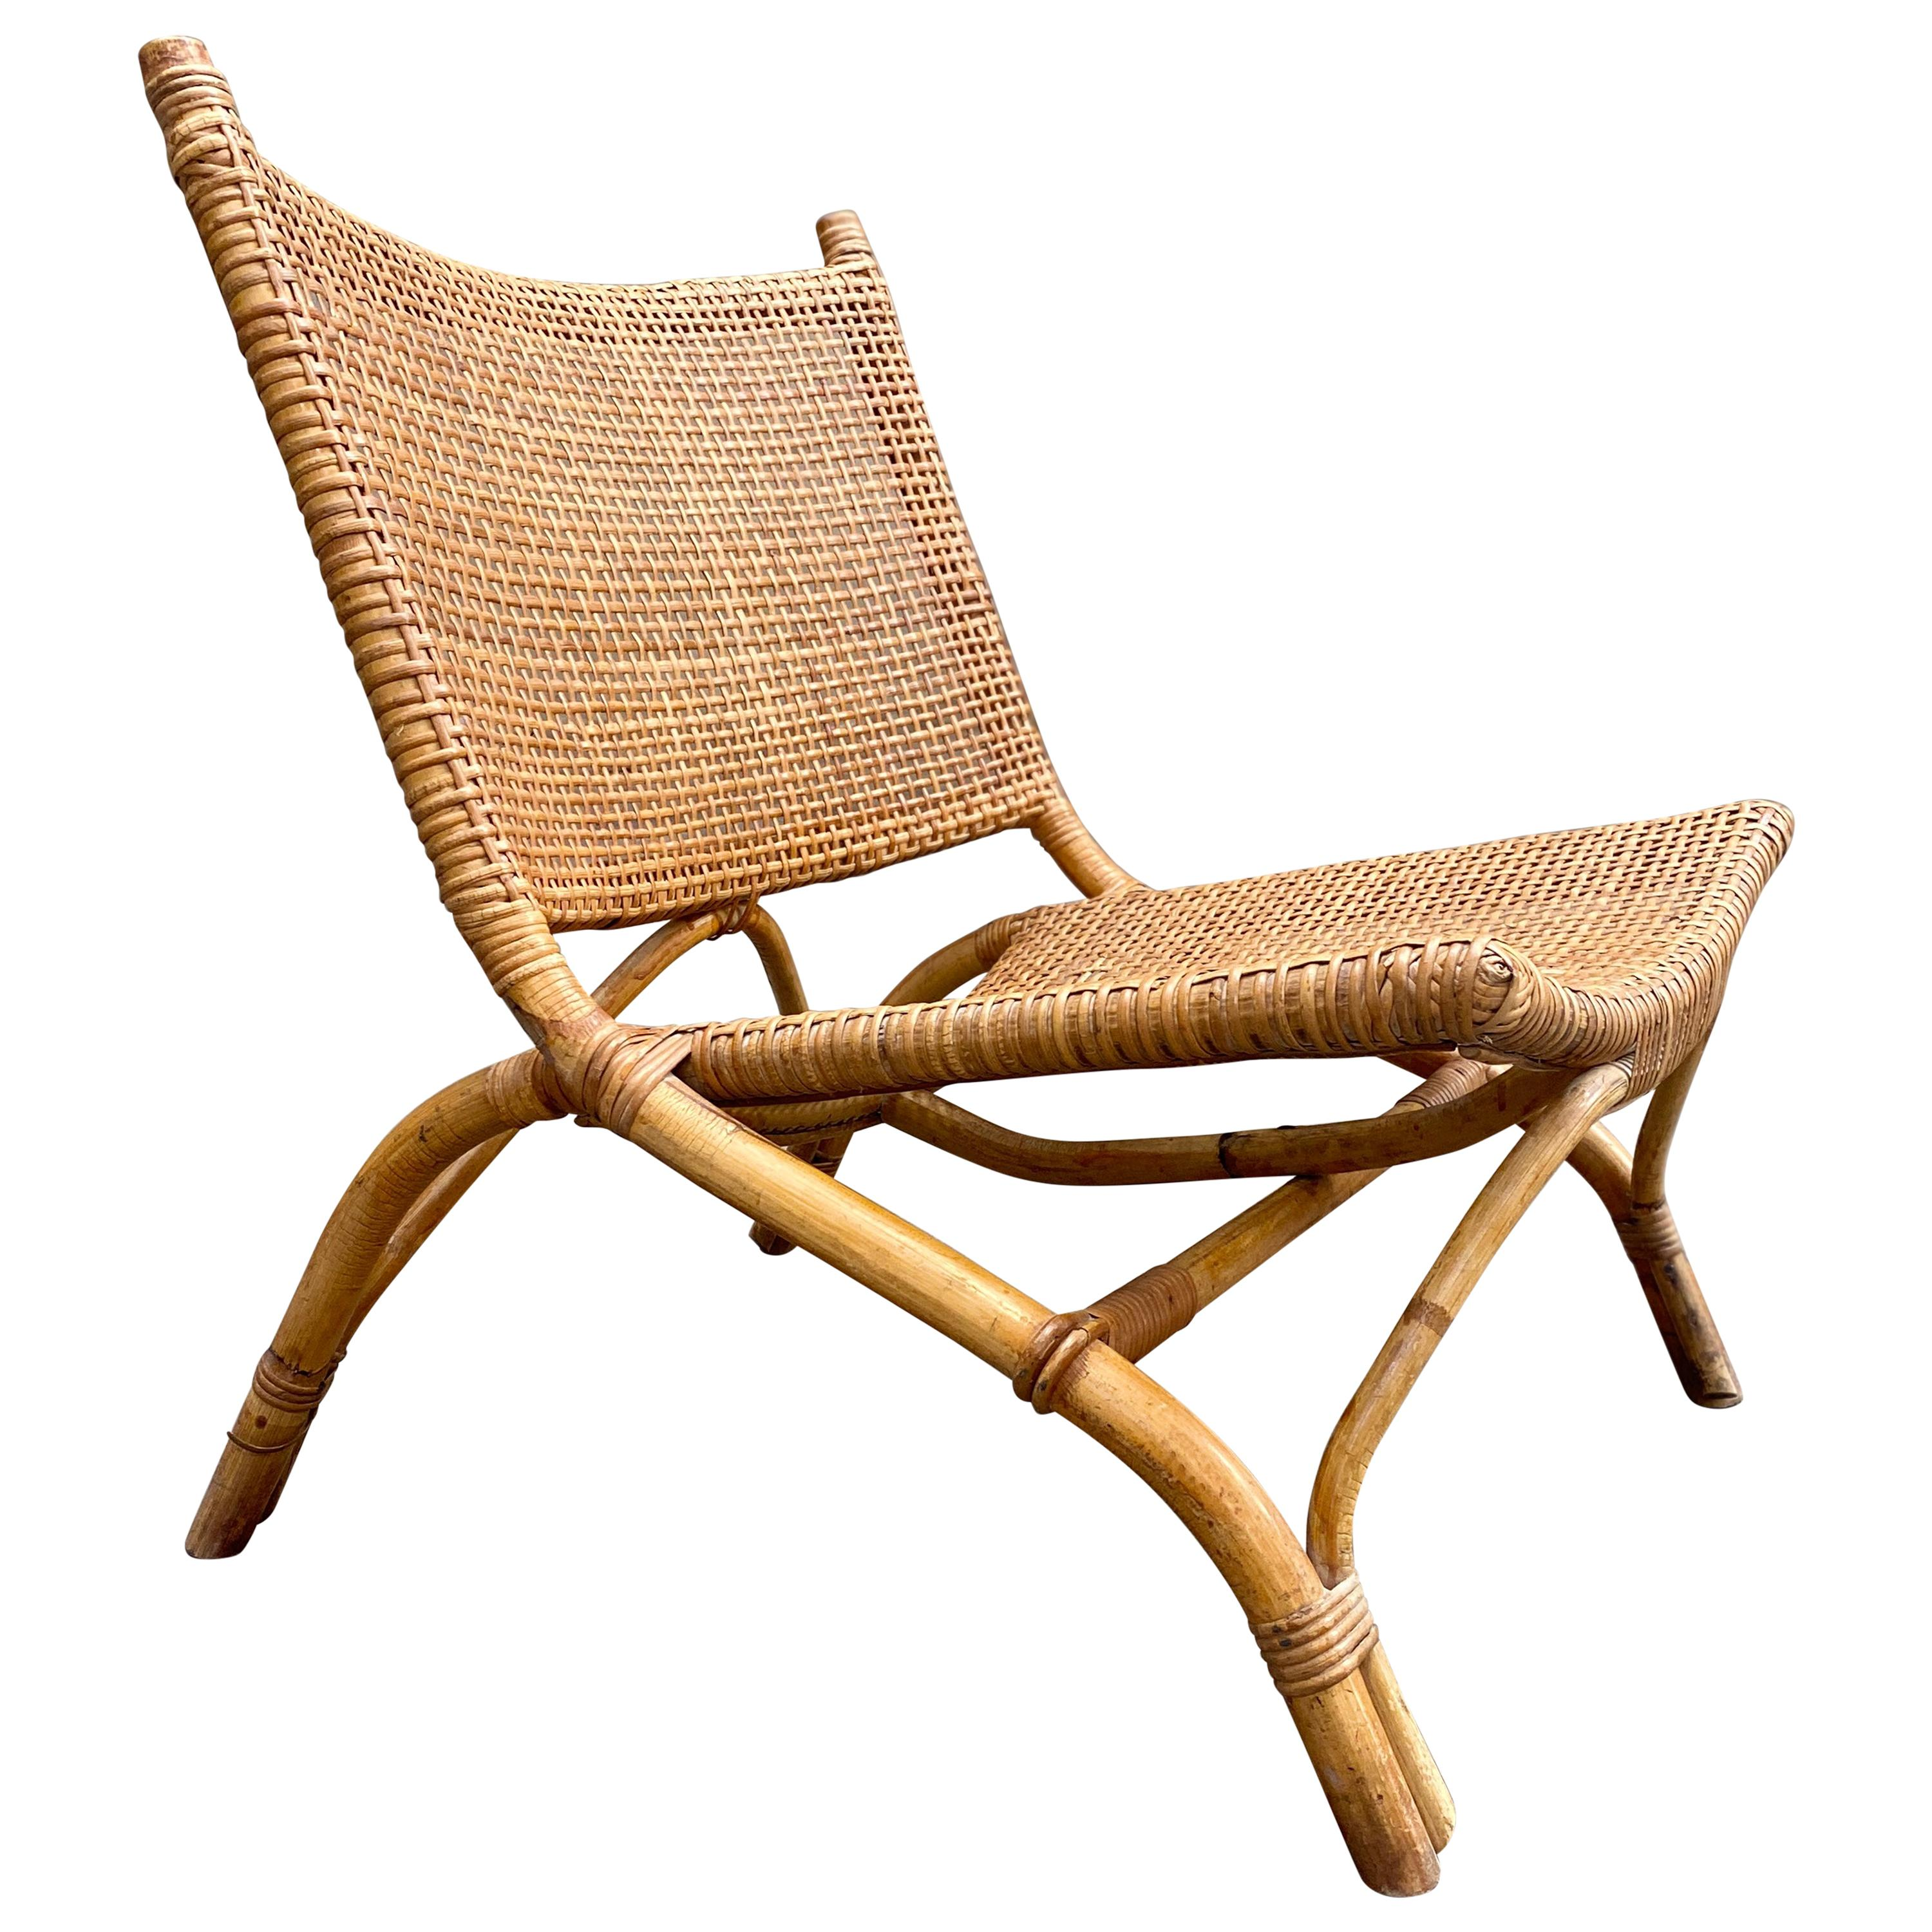 Joseph André Motte Saber Chairs in Rattan, 1954